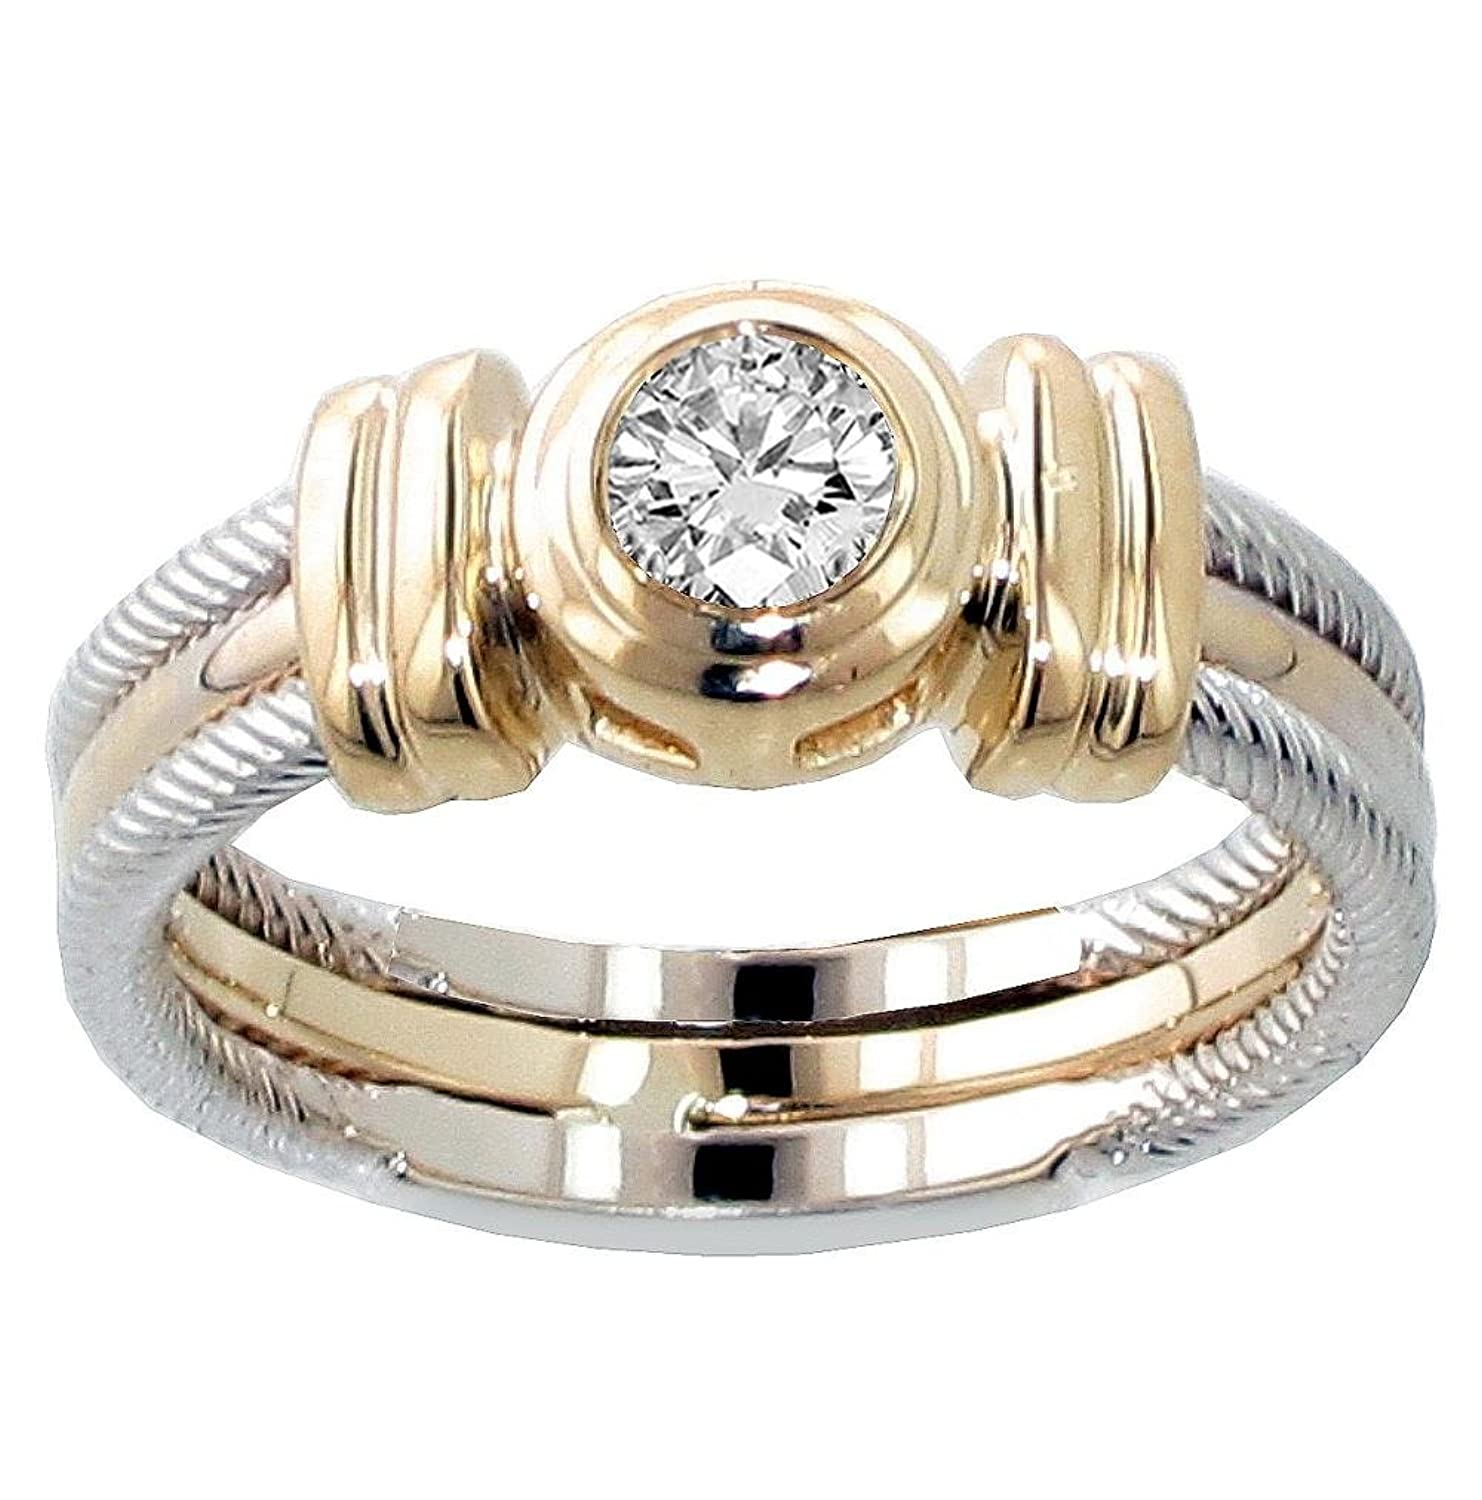 sears double wedding anniversary banded of bands sets new rings